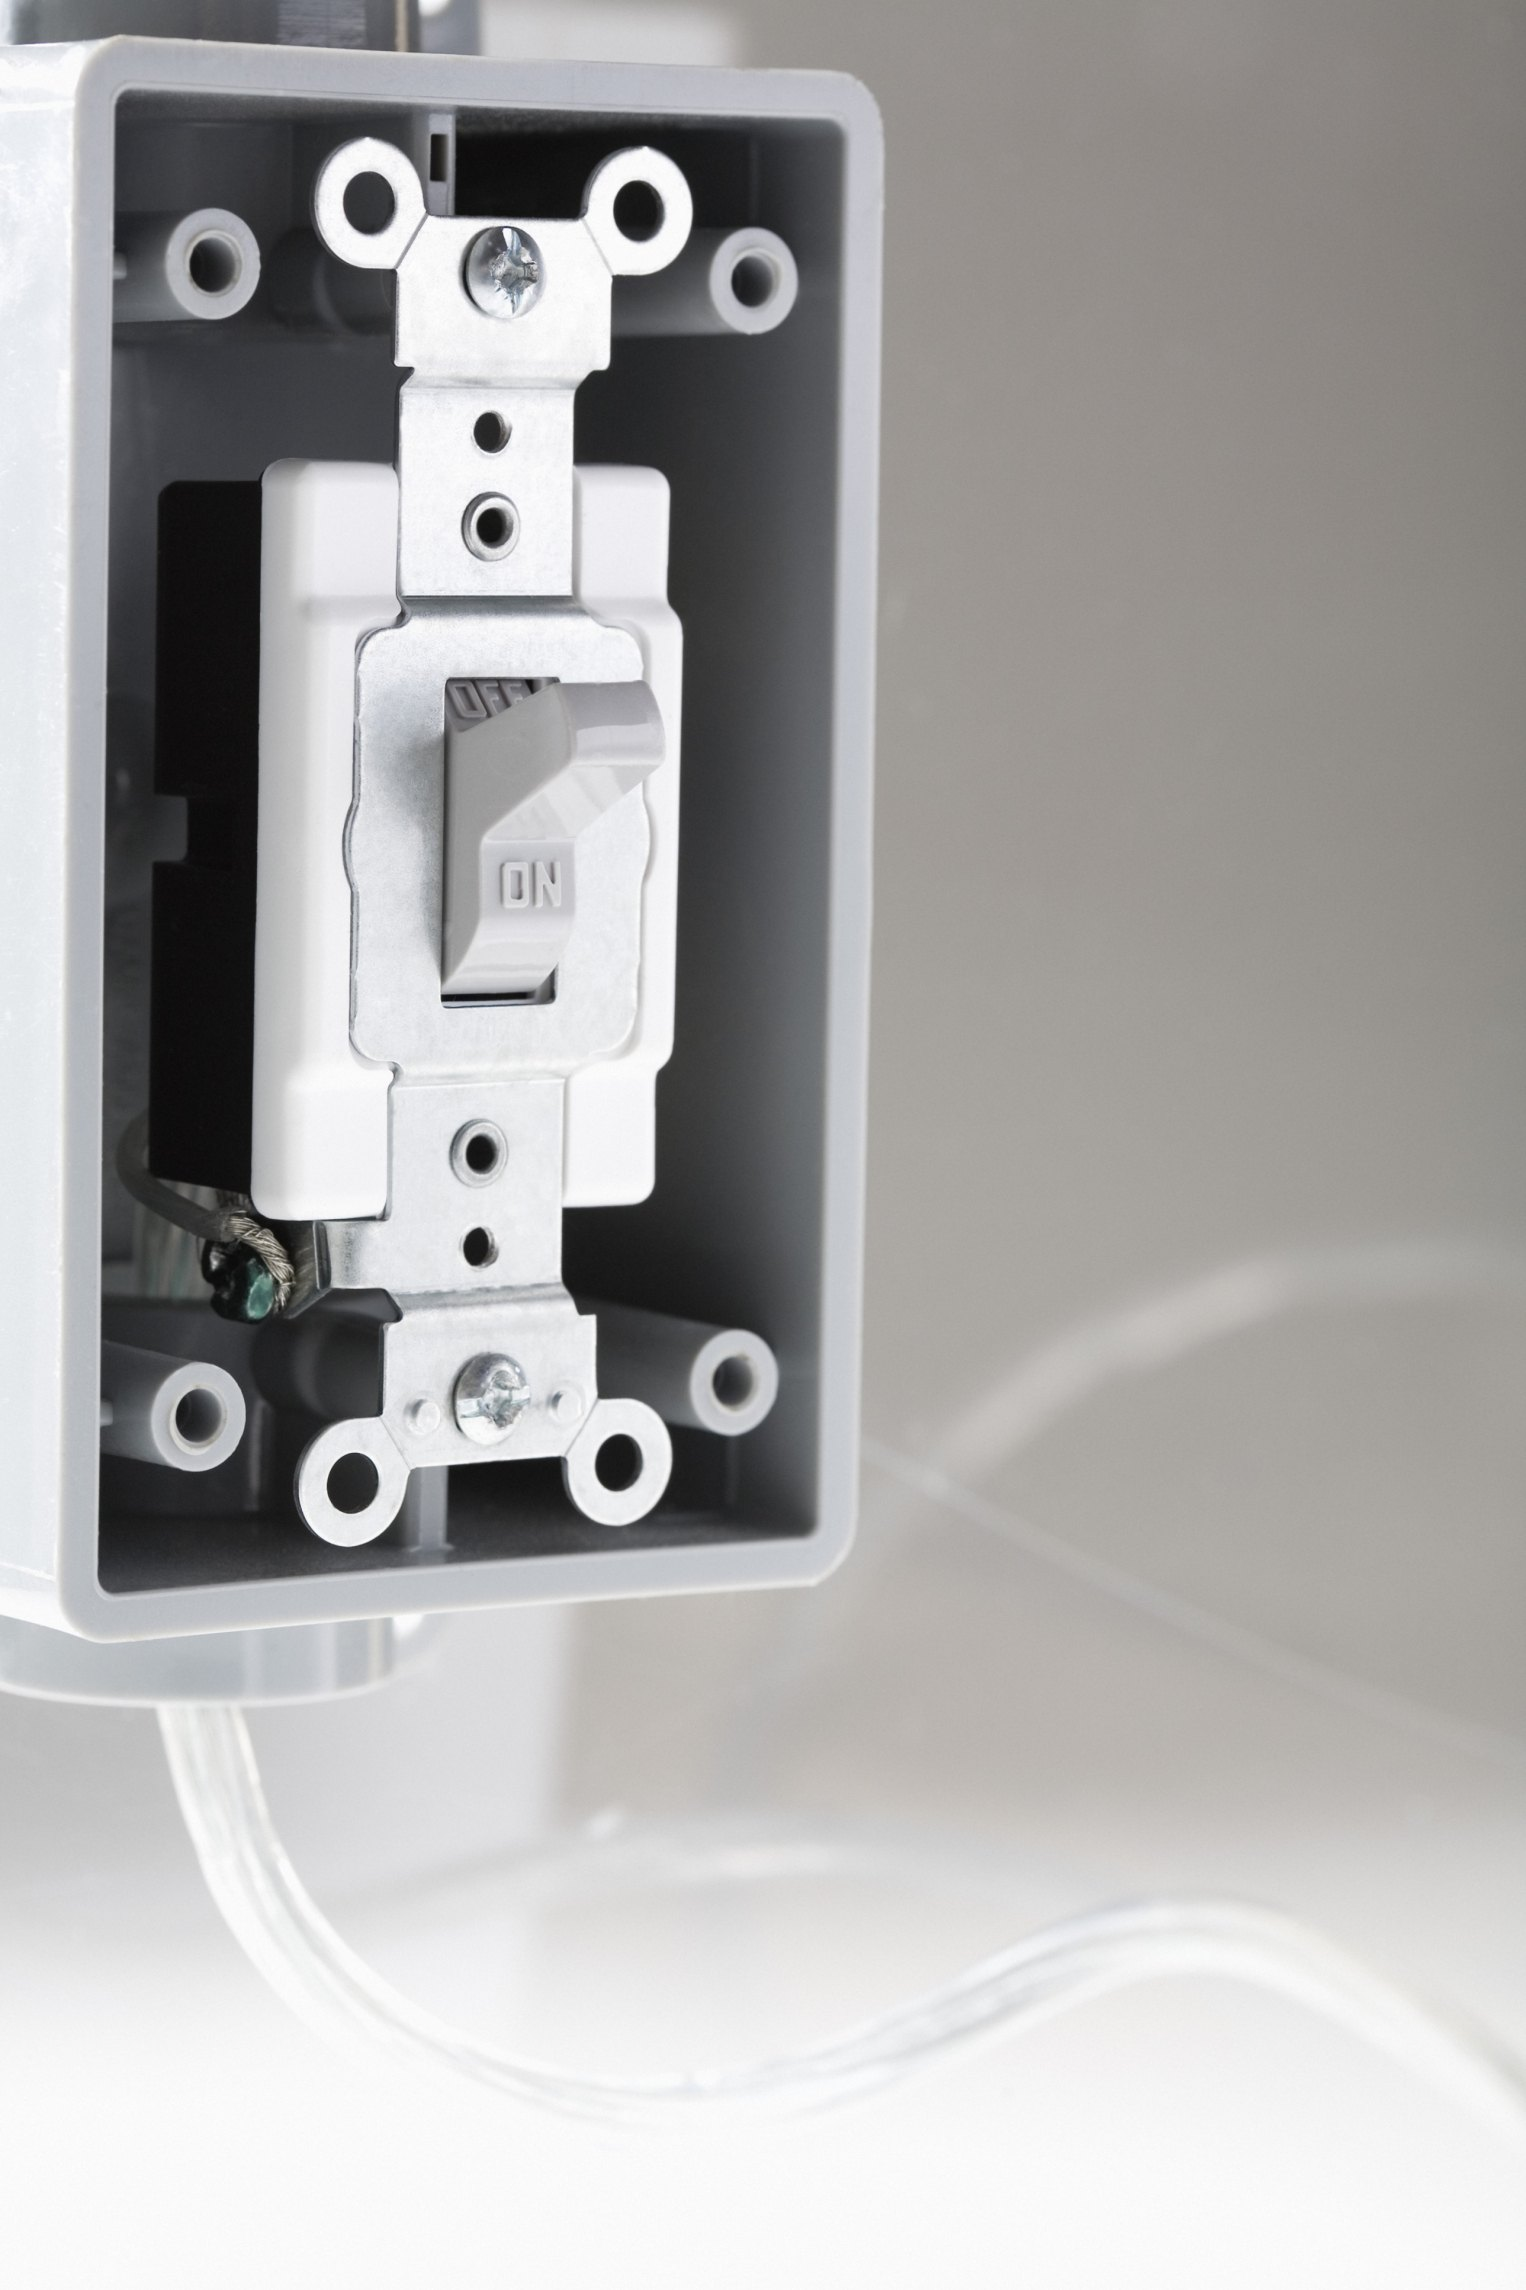 How to Jump a Light Switch | eHow